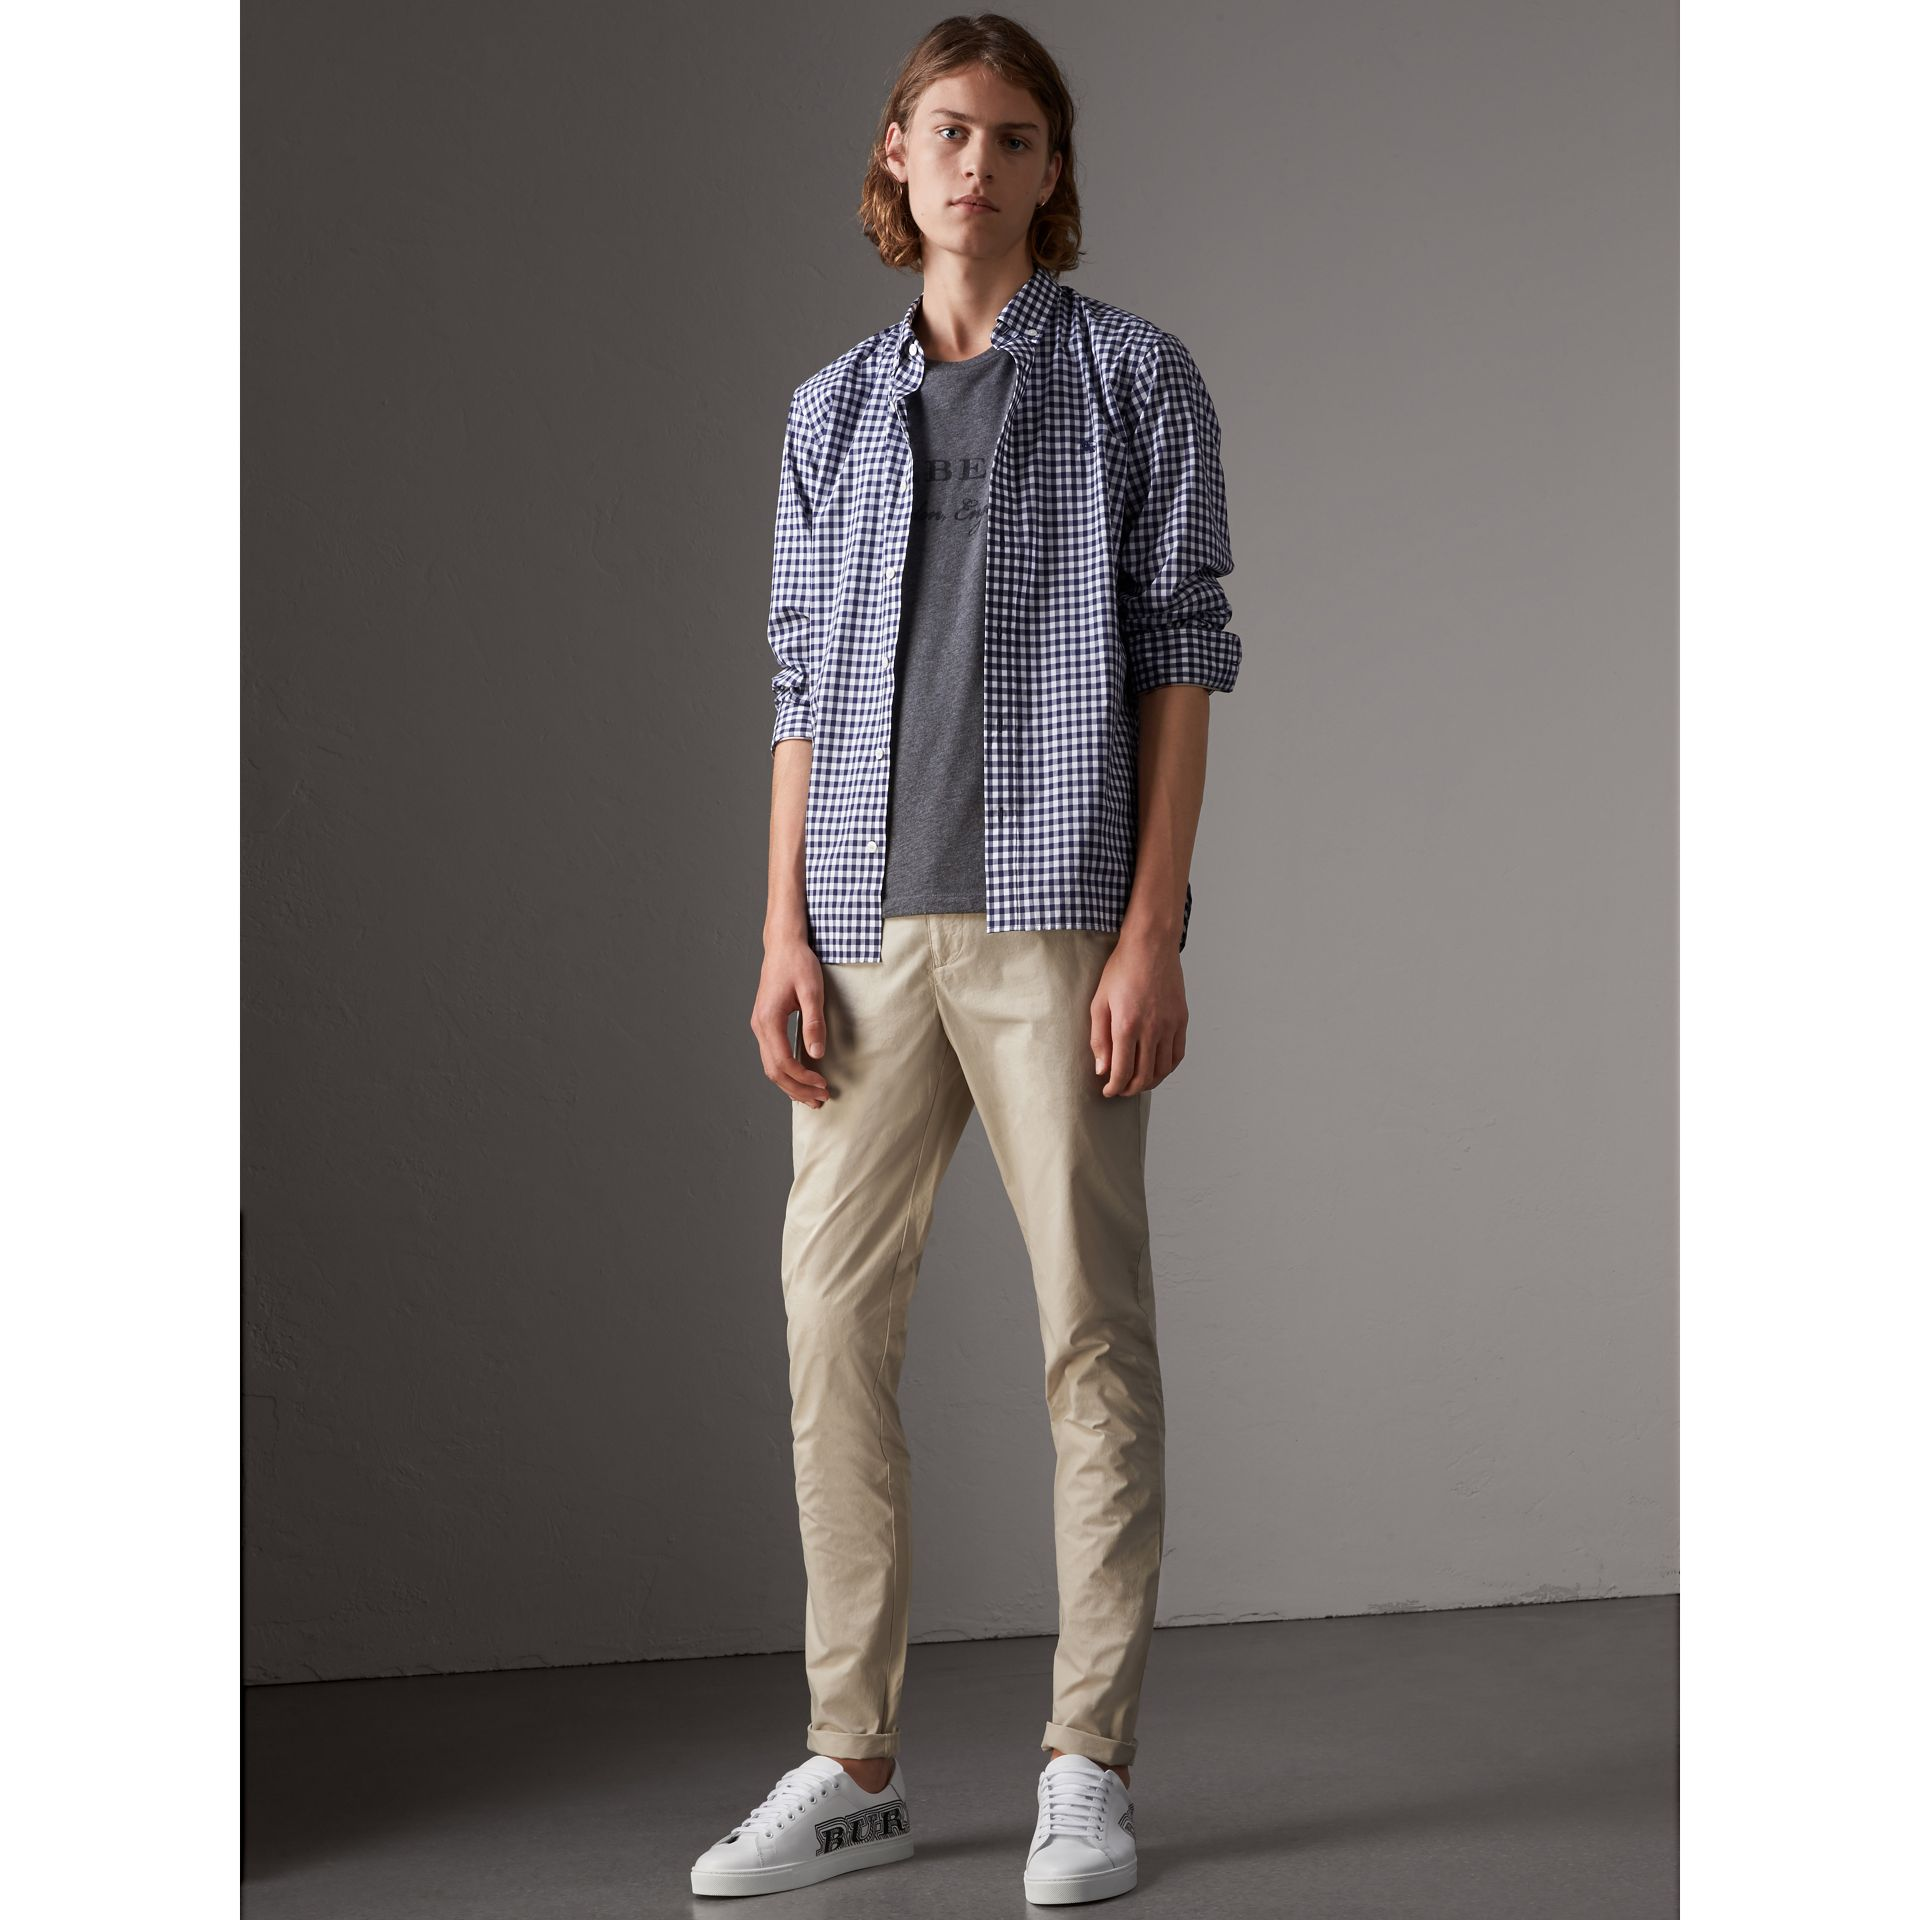 Chino slim en popeline de coton (Pierre) - Homme | Burberry - photo de la galerie 0